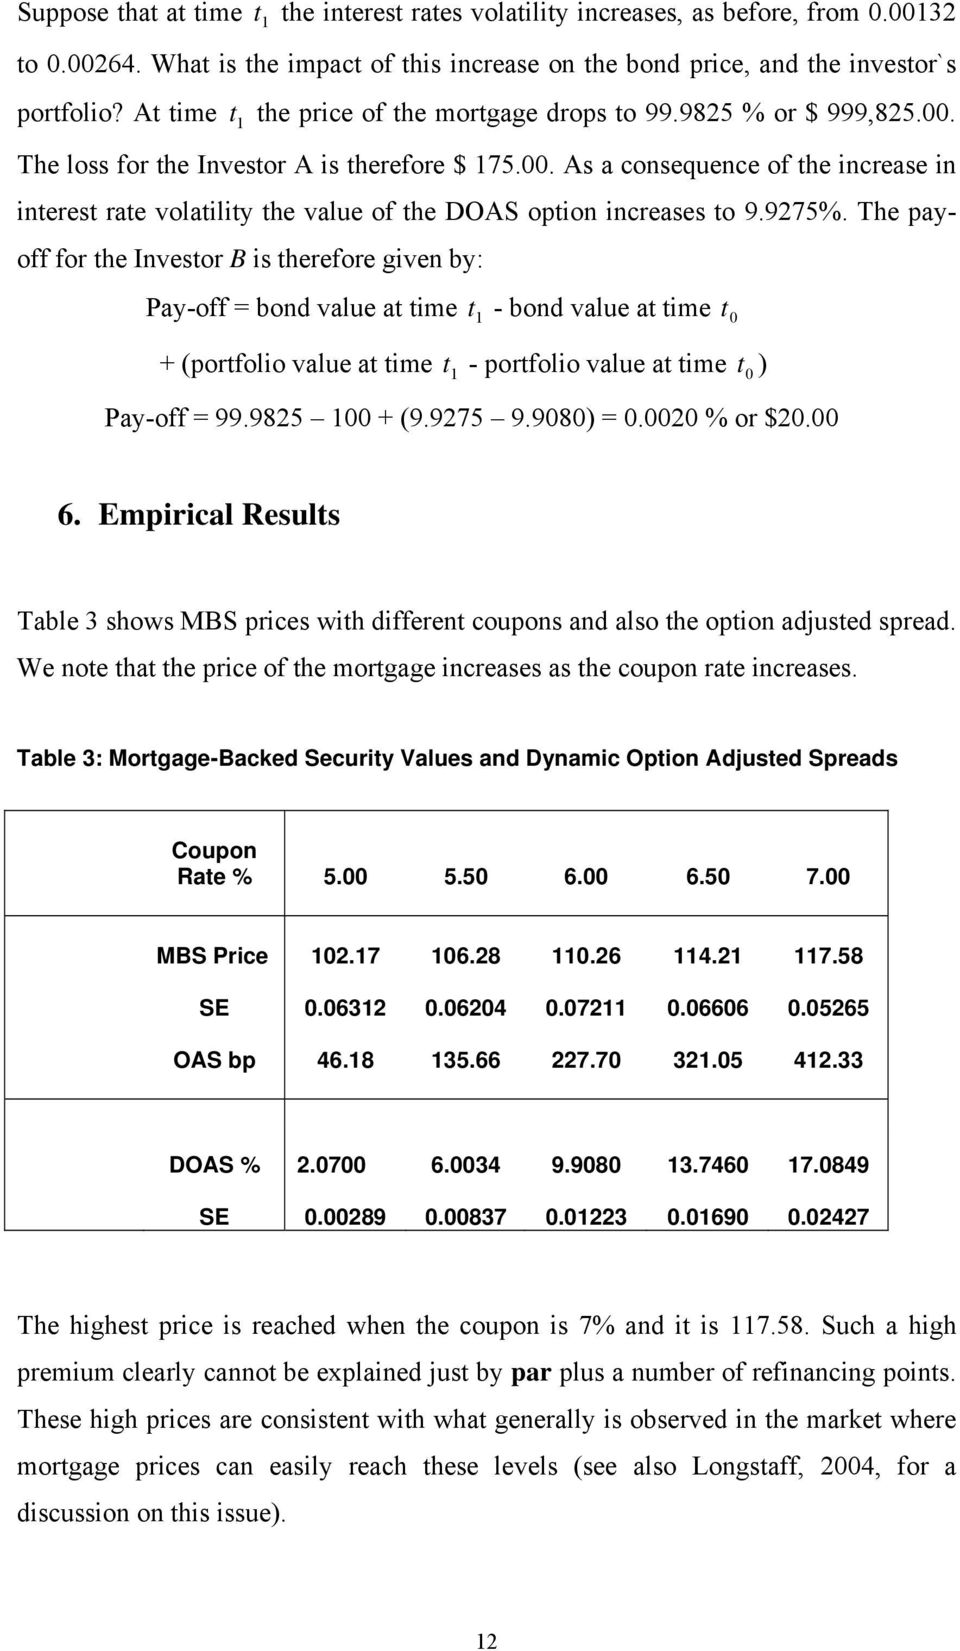 9275%. The payoff for he Invesor B is herefore given by: Pay-off = bond value a ime 1 - bond value a ime 0 + (porfolio value a ime 1 - porfolio value a ime 0 ) Pay-off = 99.9825 100 + (9.9275 9.